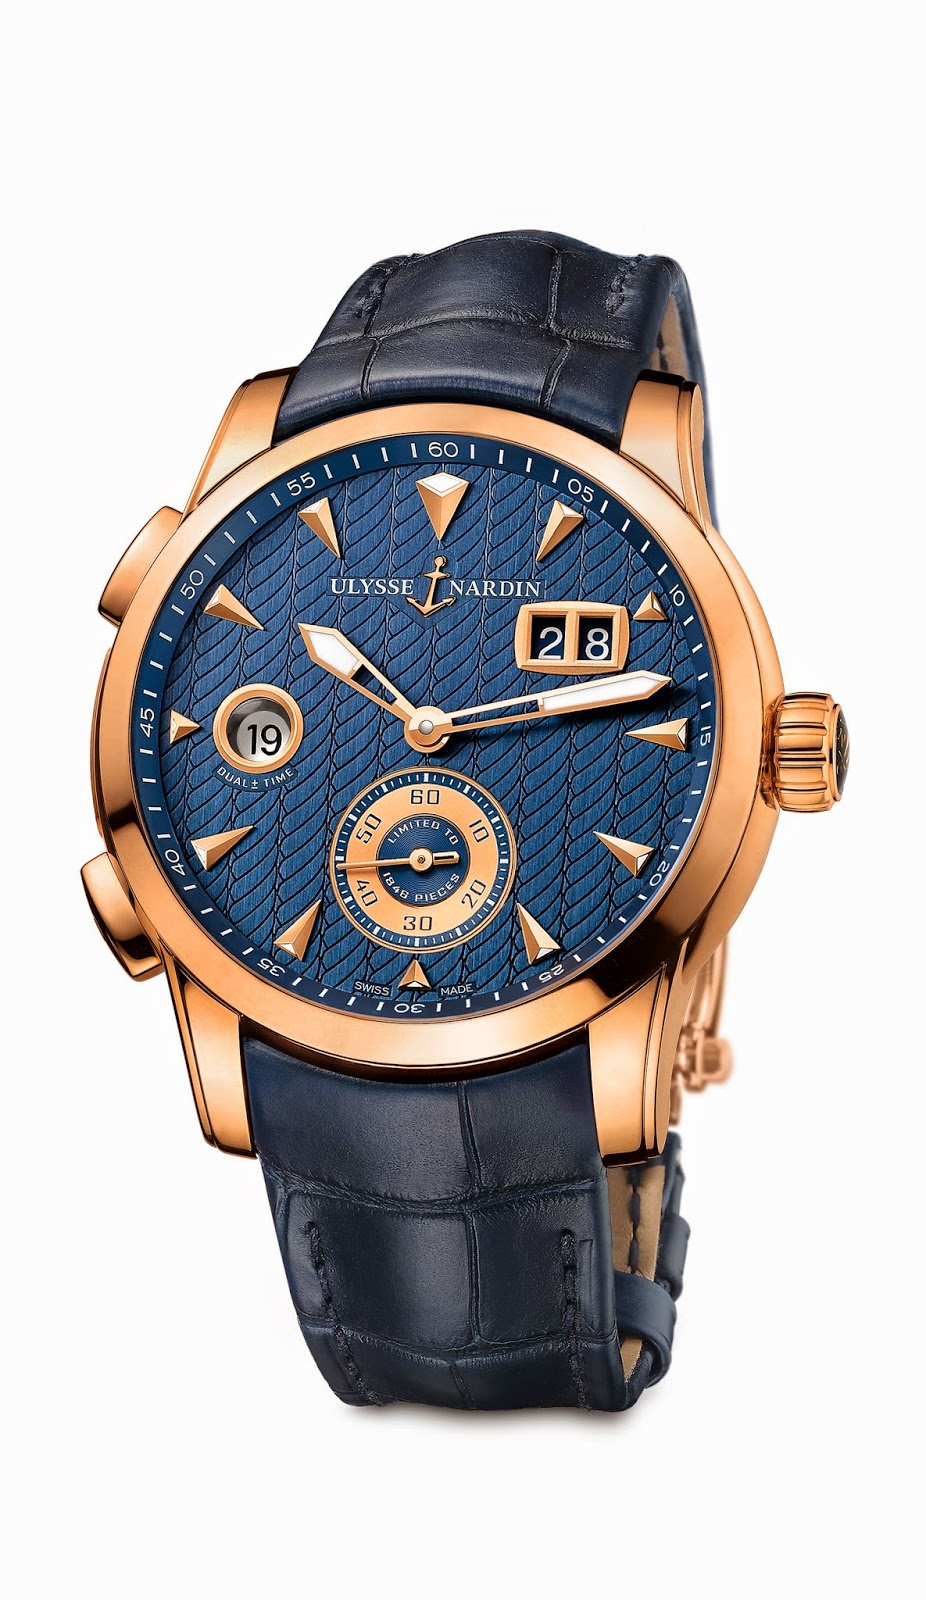 Ullysse Nardin Dual Time Manufacture1